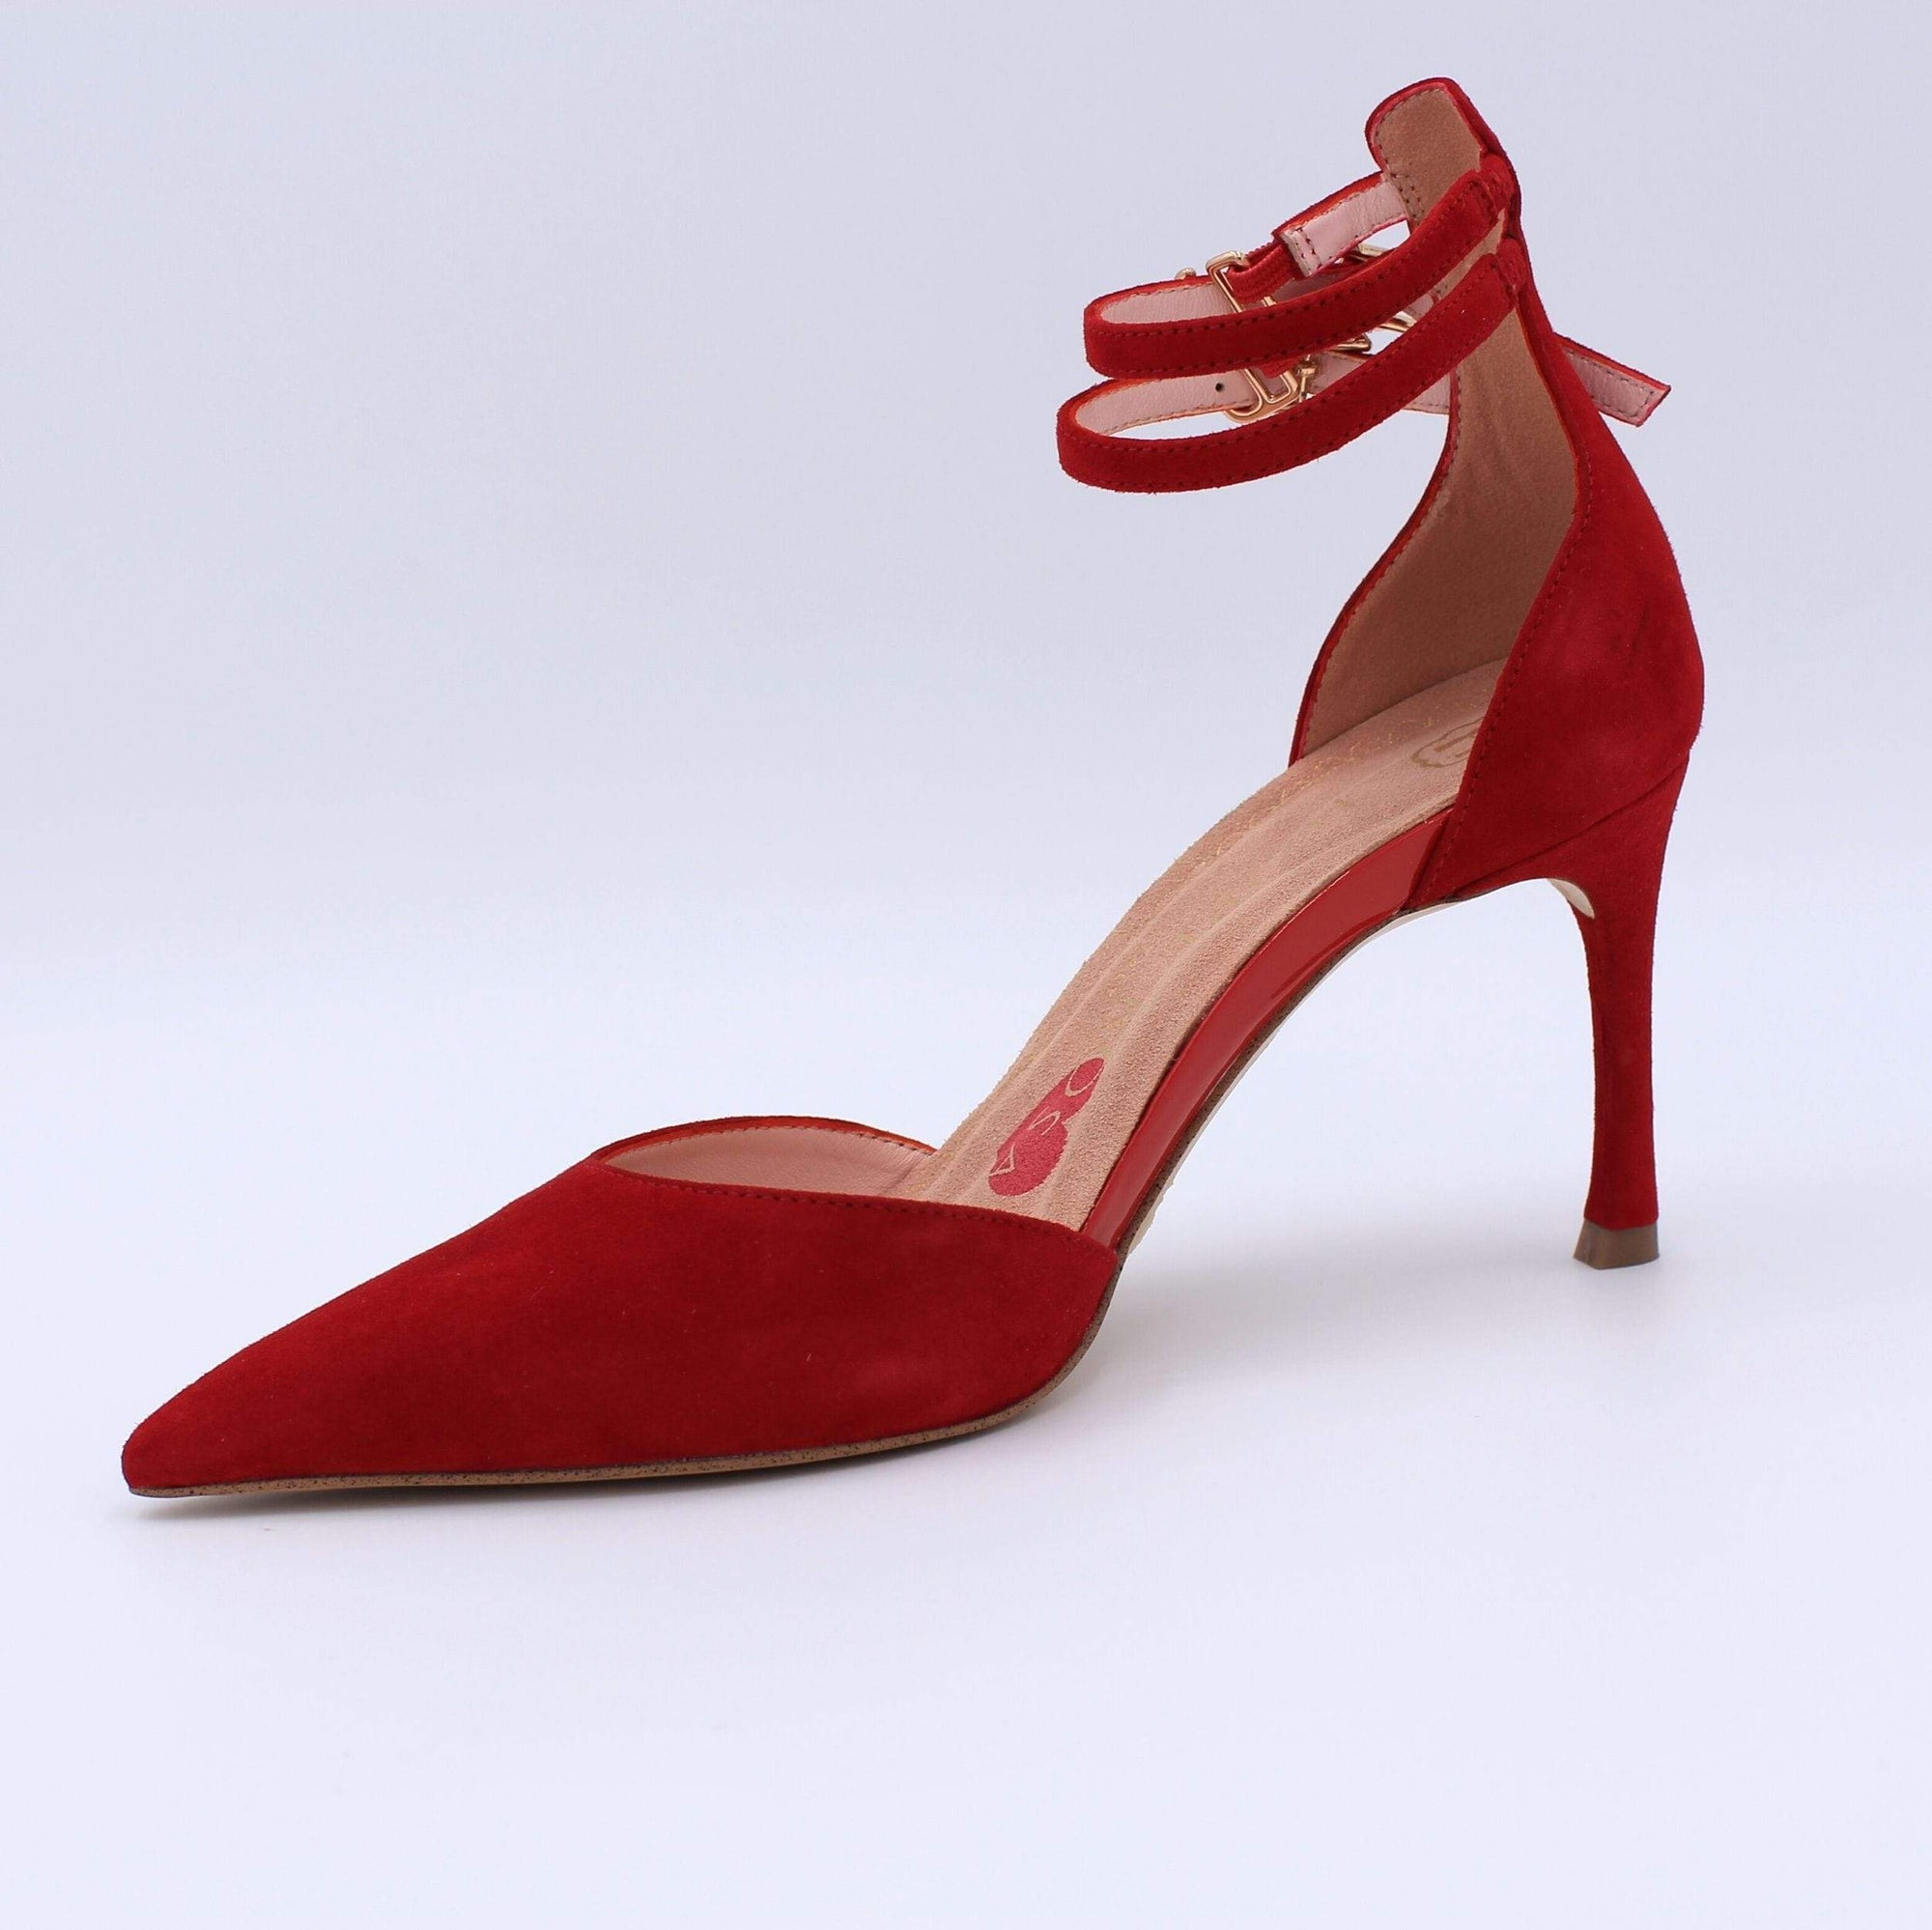 HOPE ROSA Pumps Bond Girl - ITALIAN RED